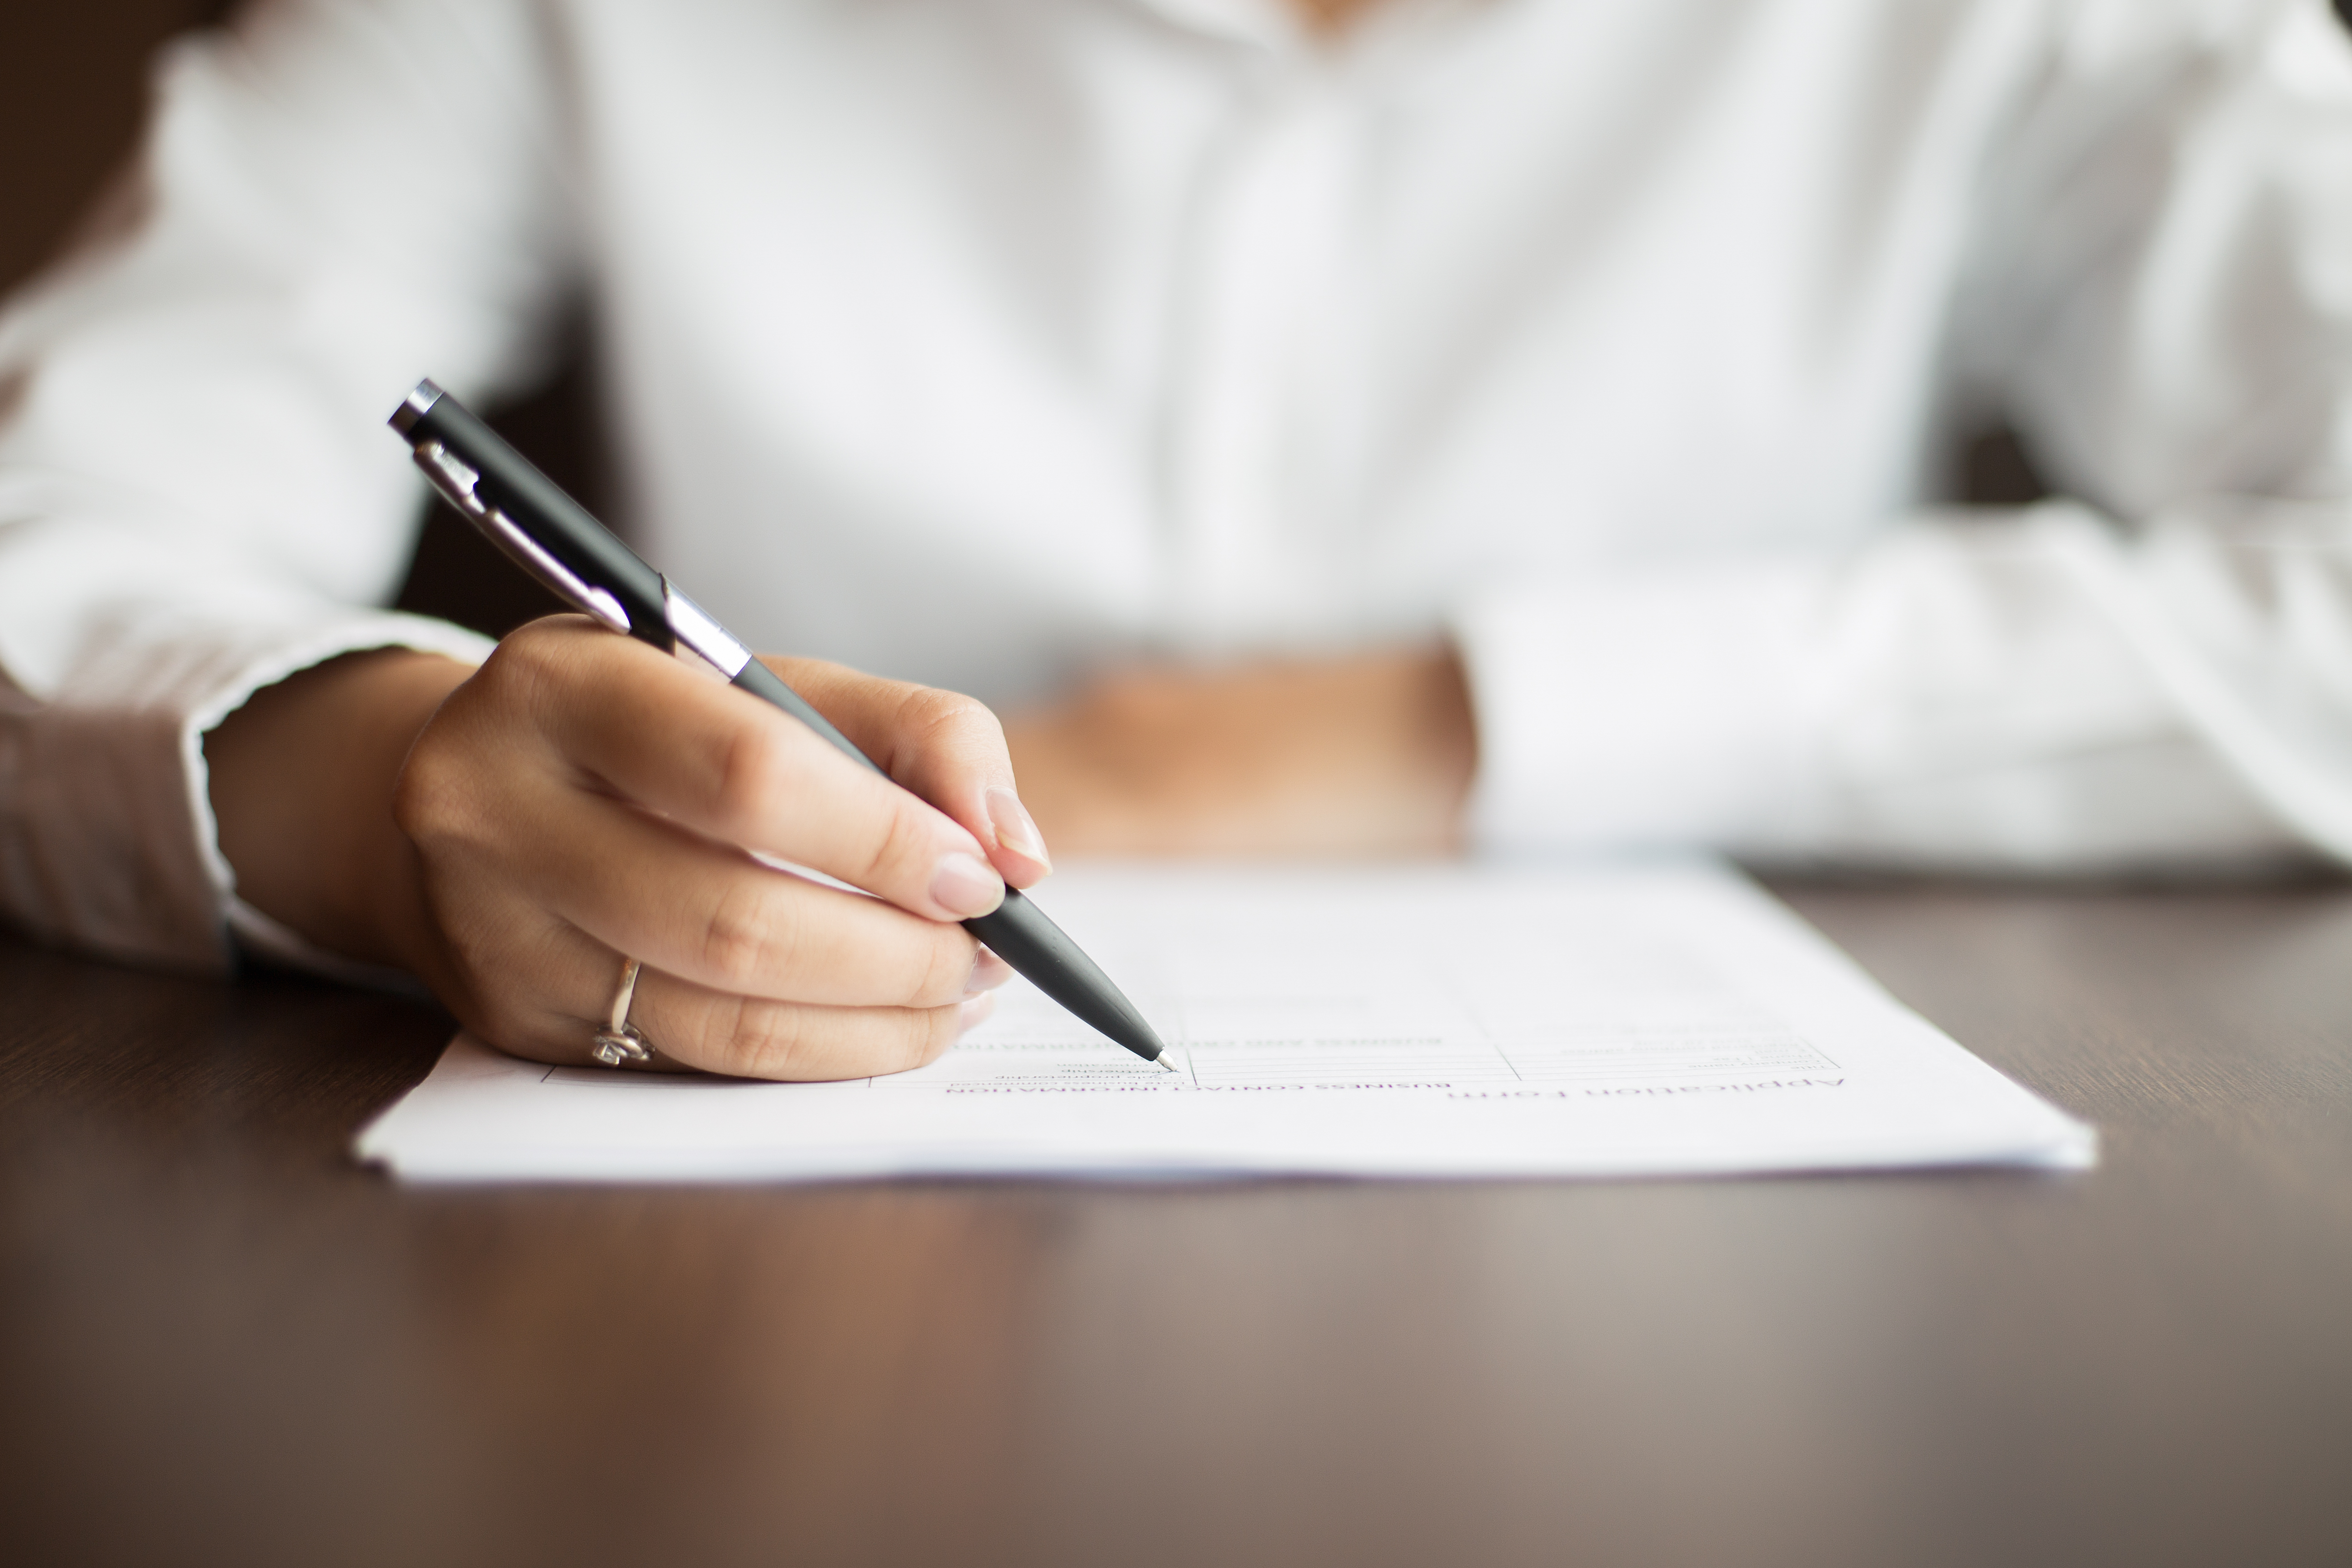 Hand of young businesswoman wearing ring and sitting at table writing on document with pen in office